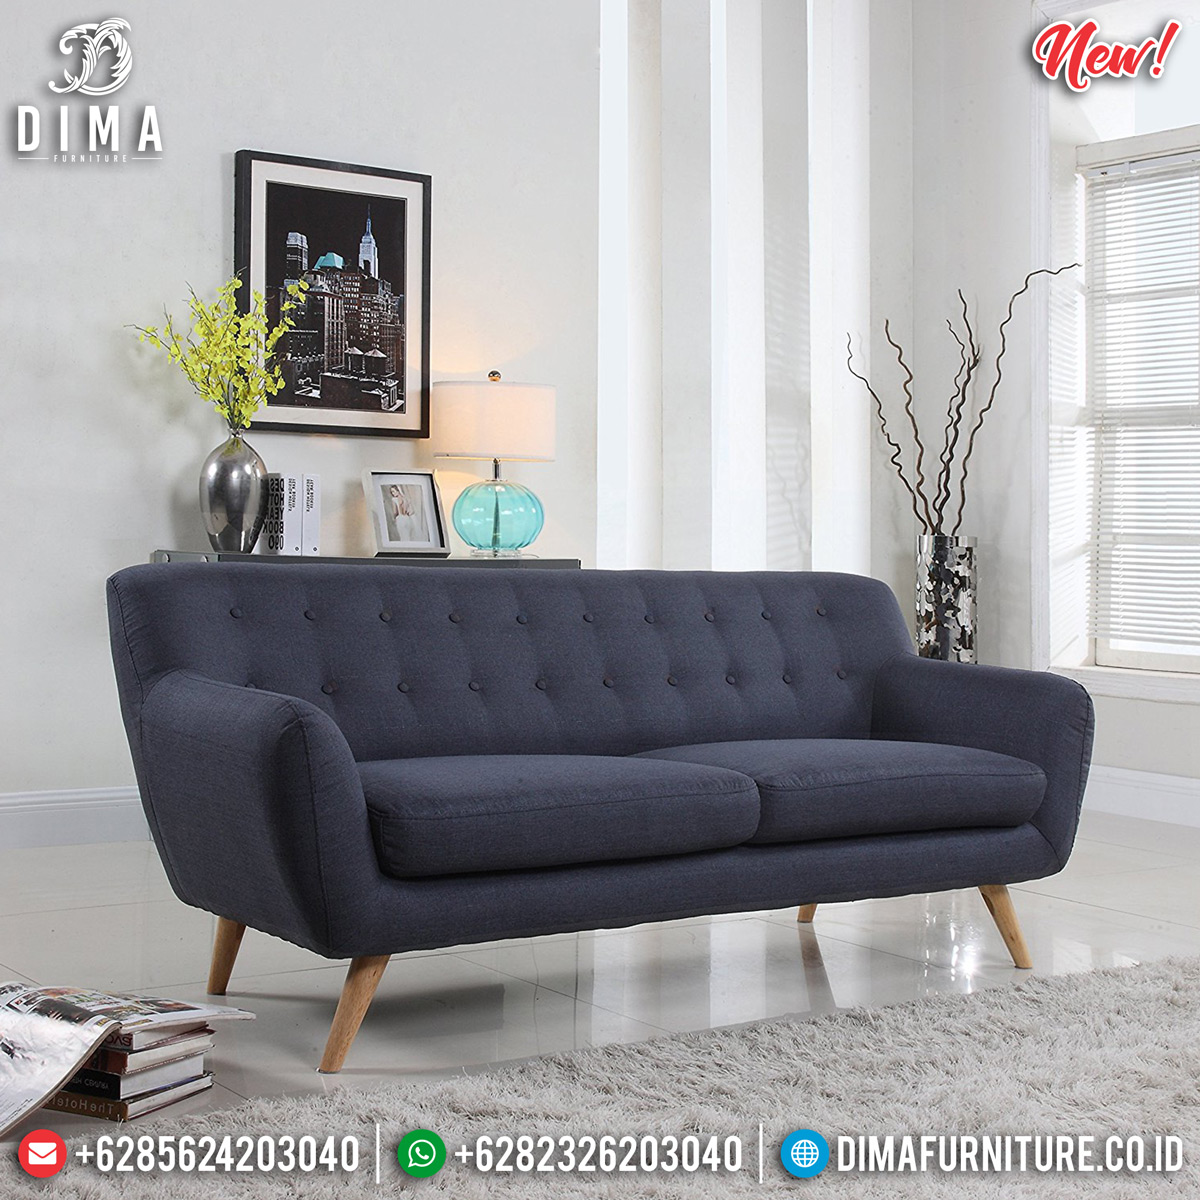 Sofa Minimalis Jepara Vintage Retro Dark Blue Natural Finish DF-1297